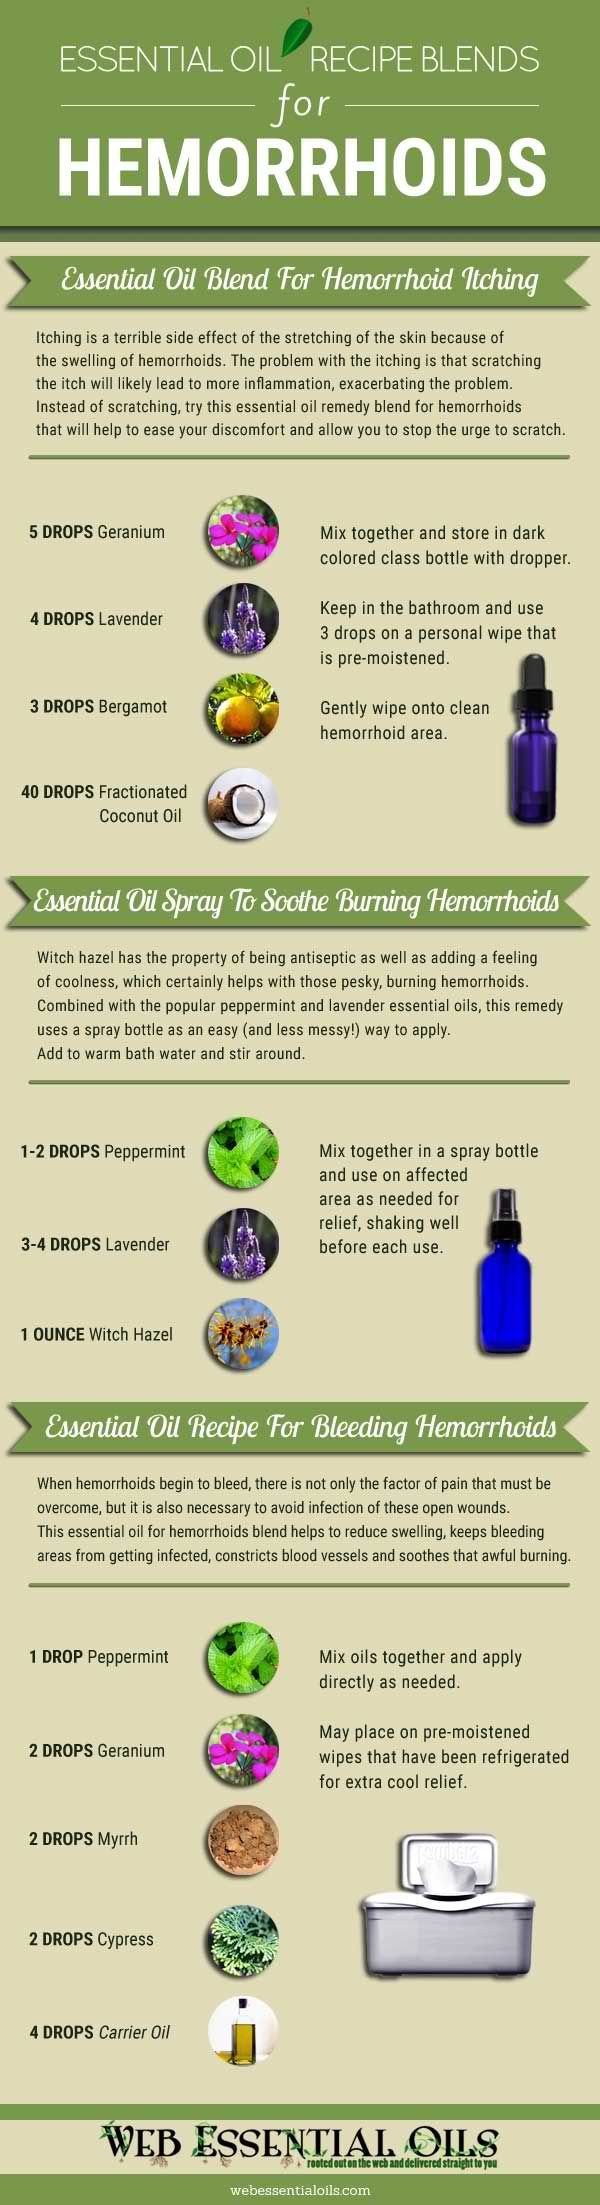 best-essential-oil-blends-for-treating-hemorrhoids-and-its-symptoms